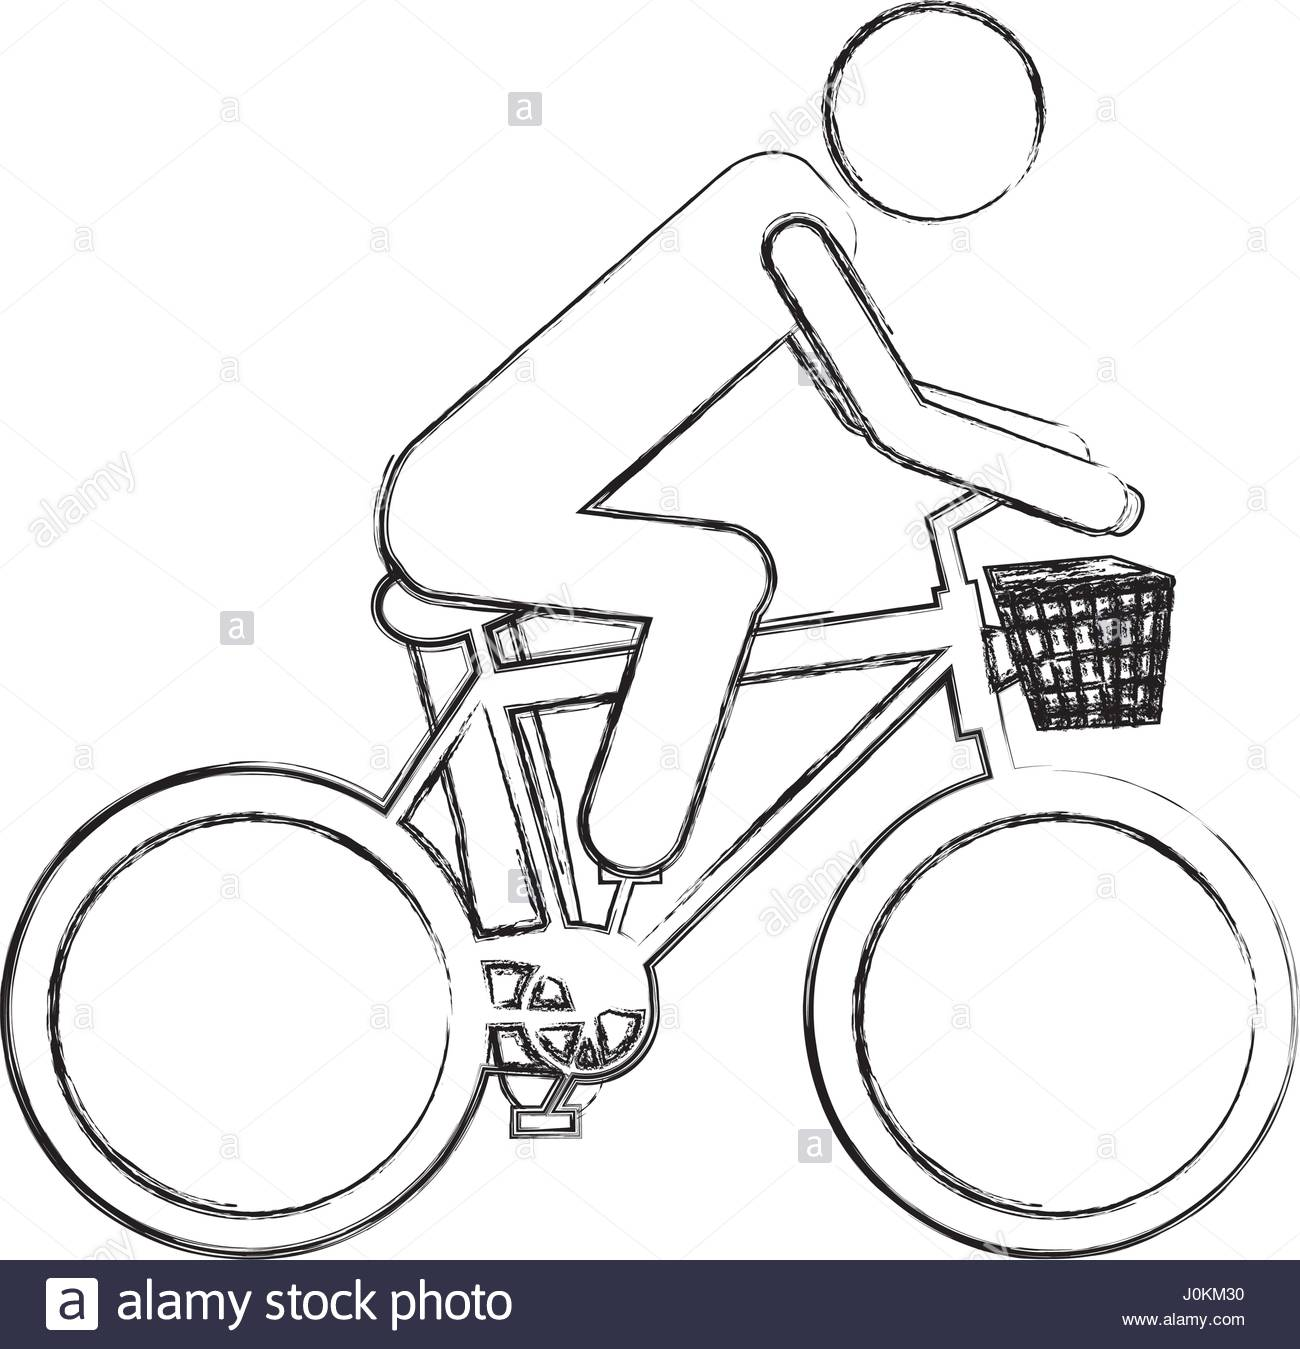 1300x1349 Monochrome Sketch Pictogram Of Man In Sport Bike With Basket Stock